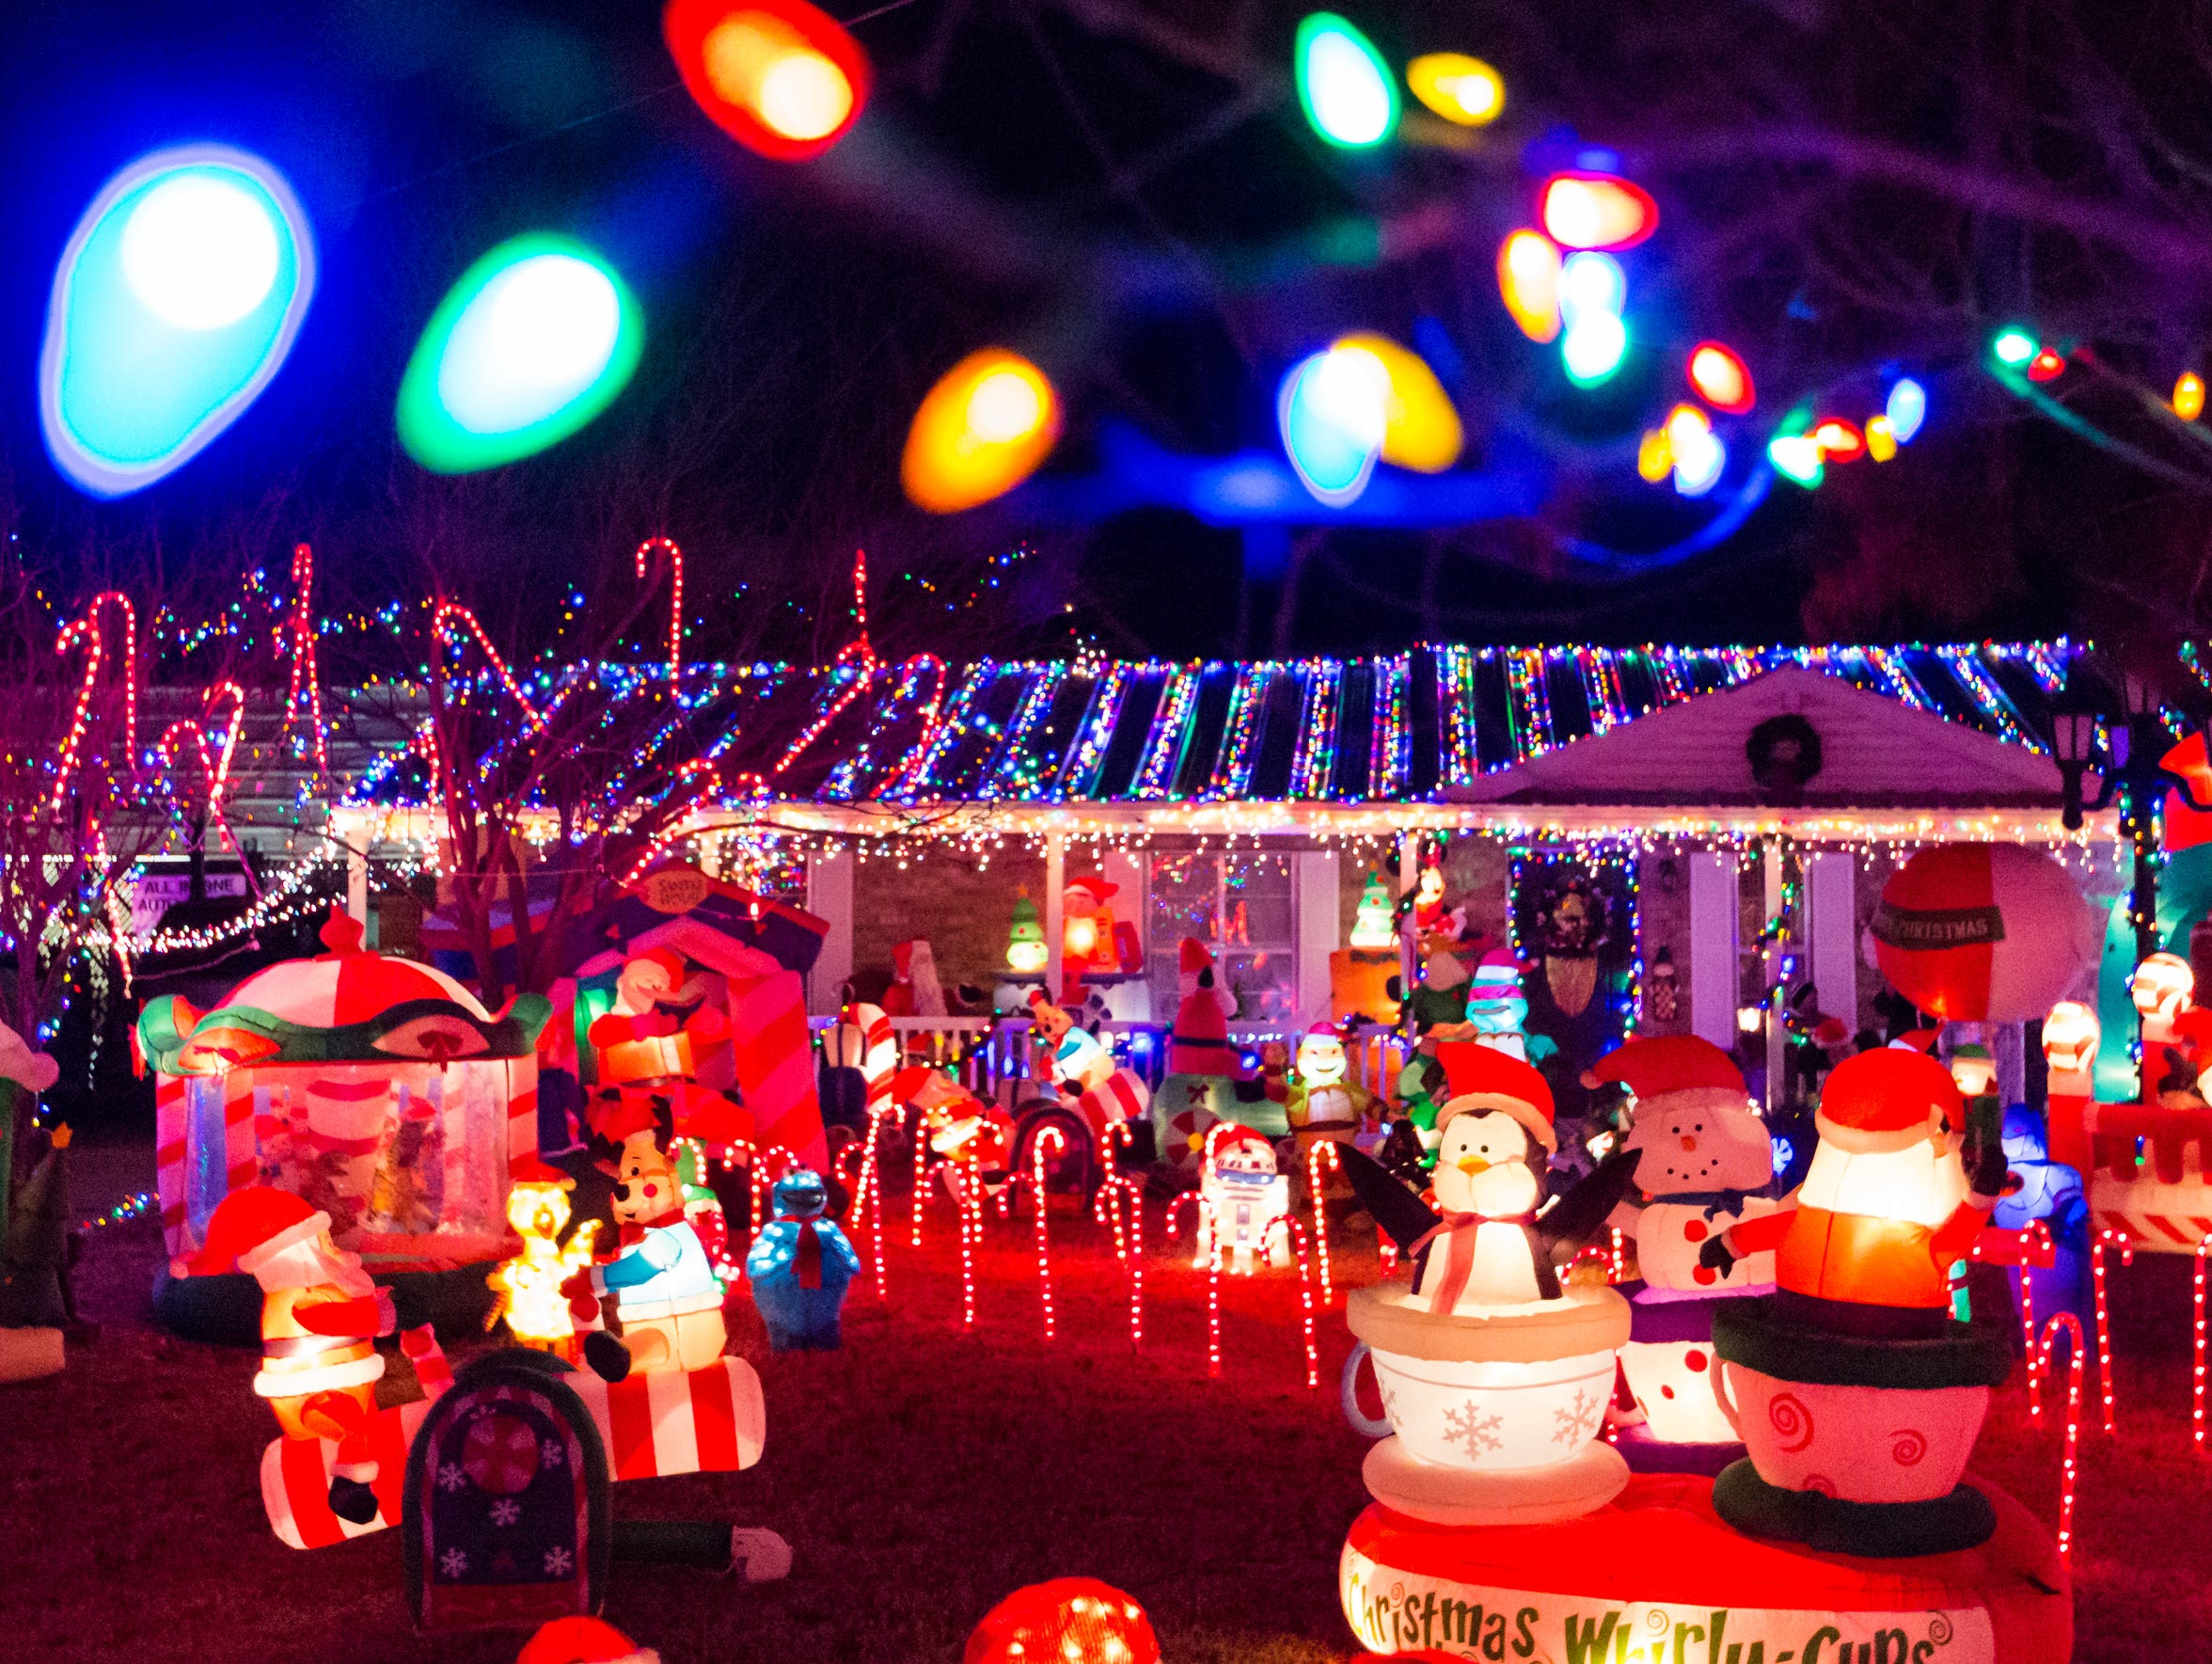 A large collection of Christmas lights and inflatables